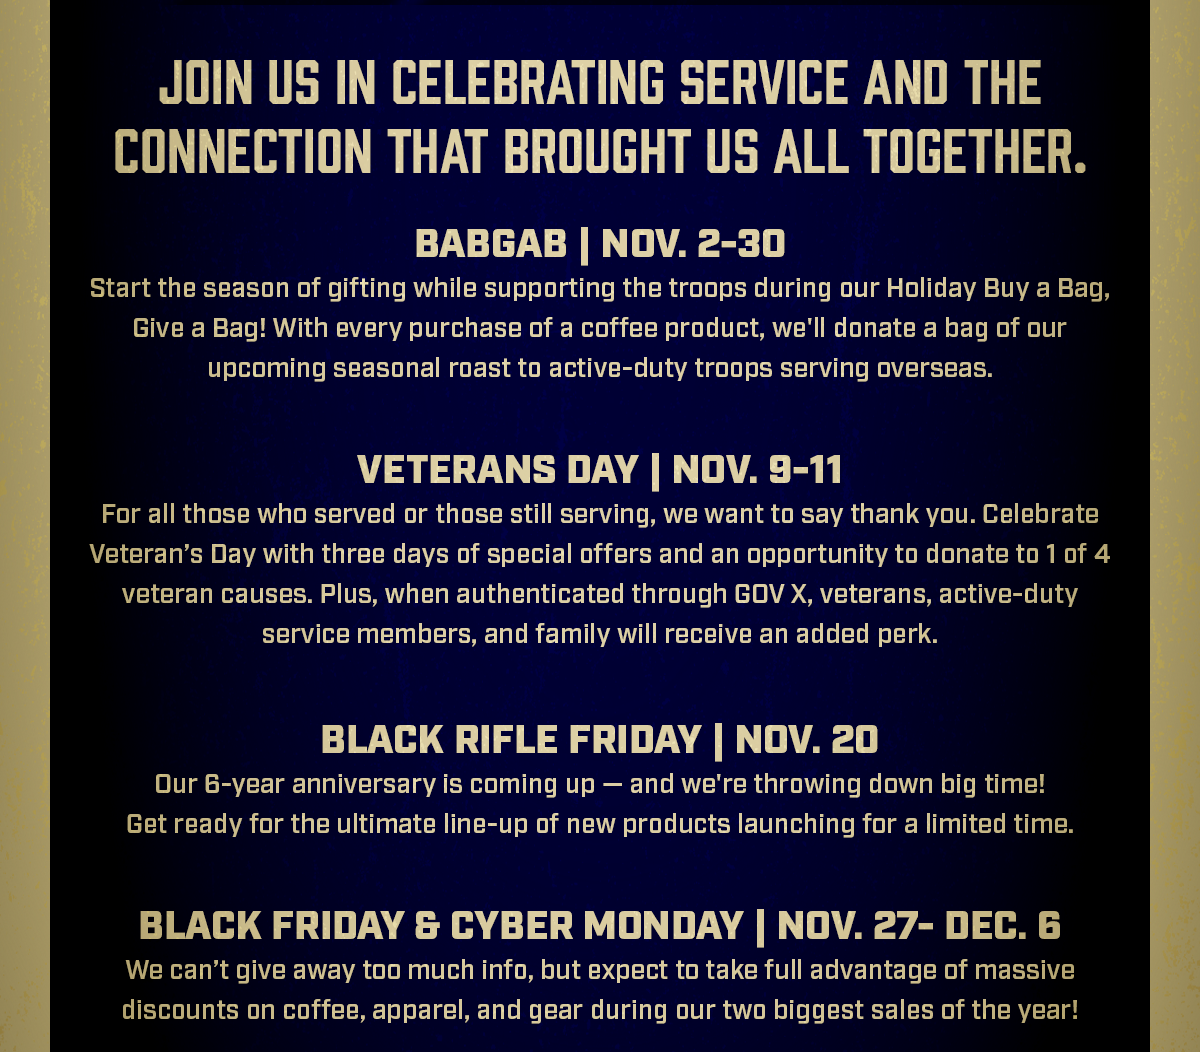 Join Us in Celebrating Service and the Connection that Brought Us All Together